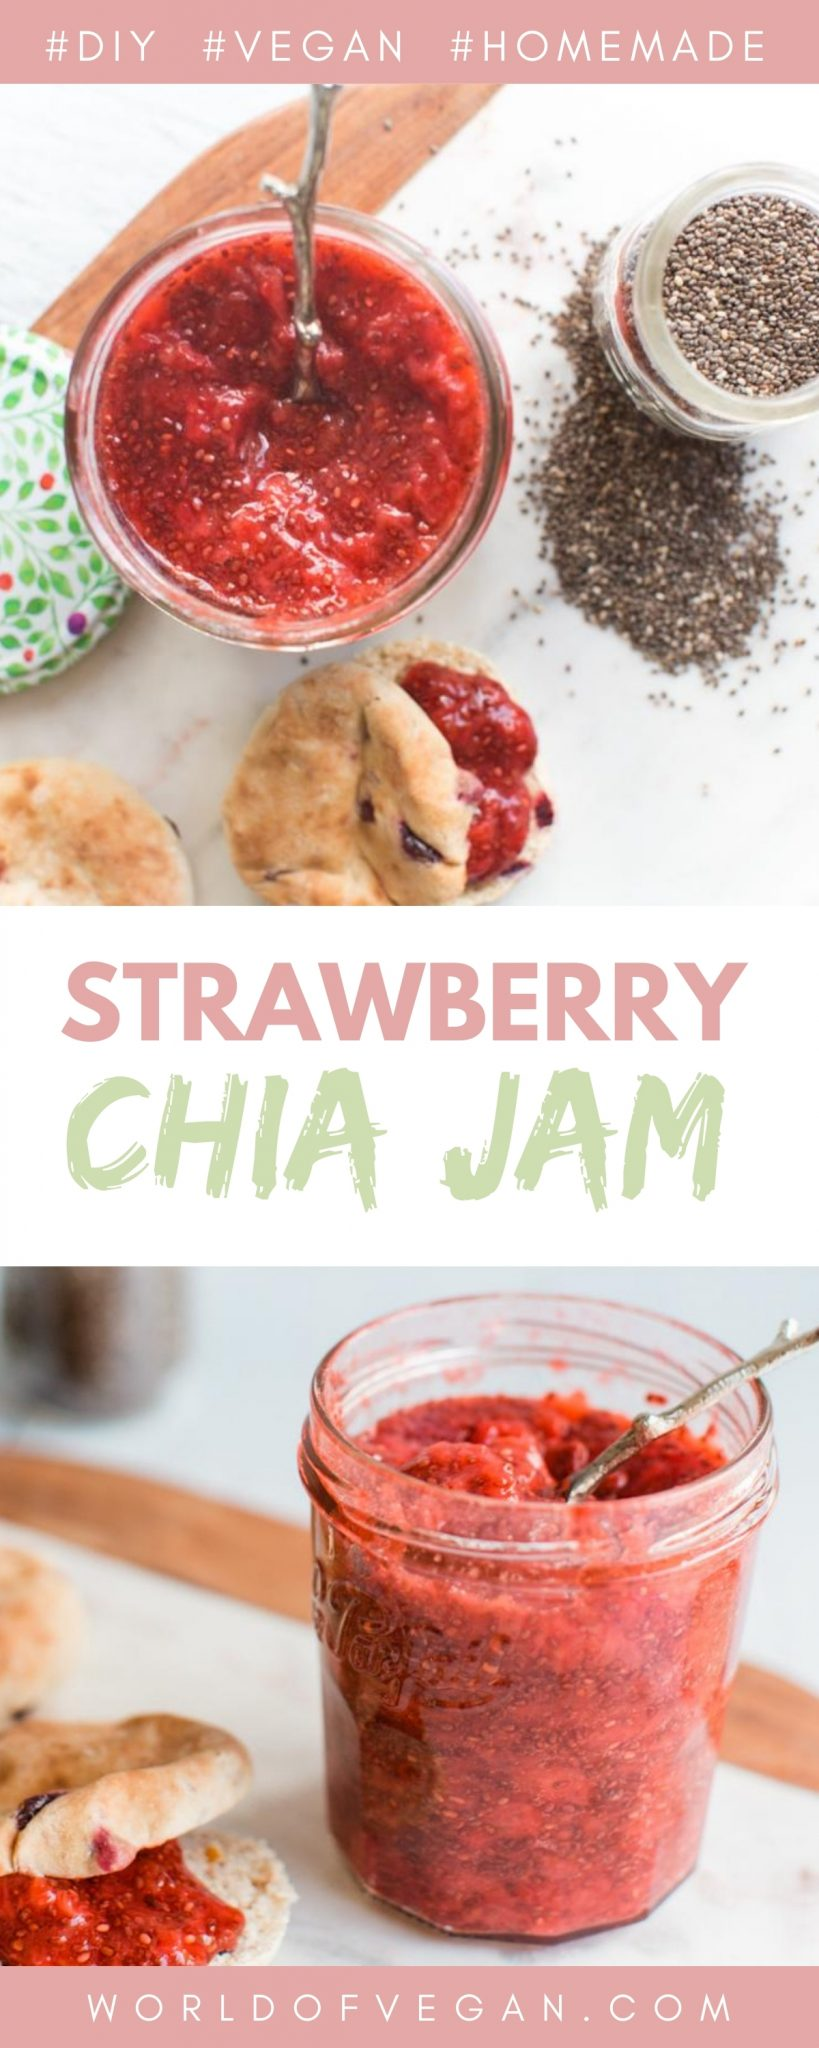 Homemade Strawberry Chia Jam | World of Vegan Recipe